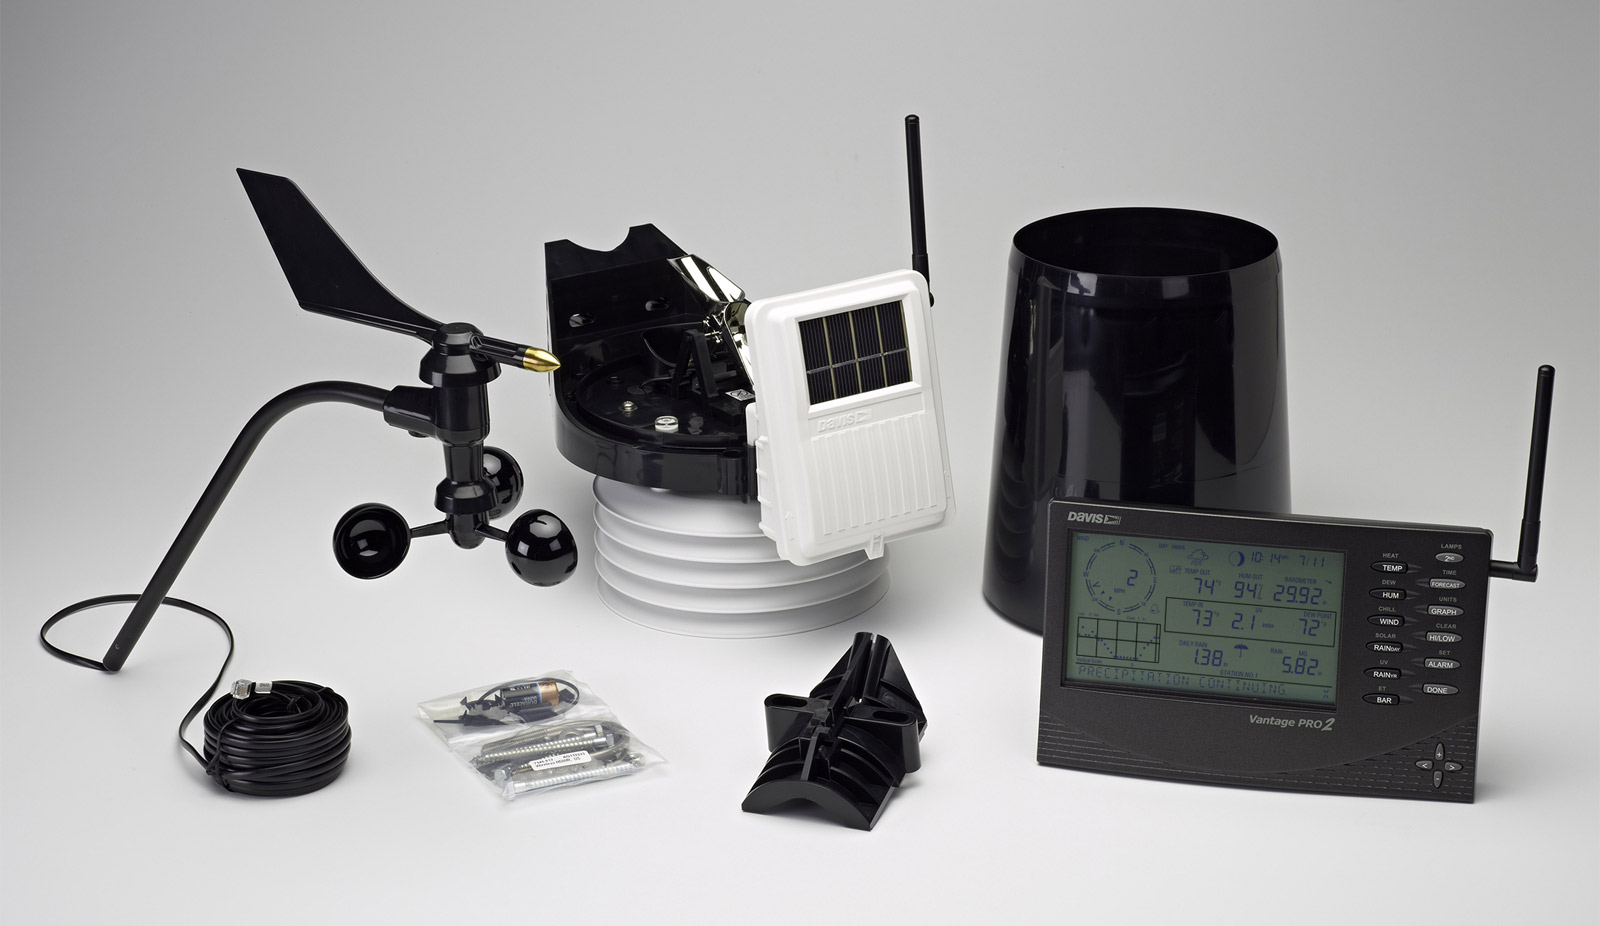 Vantage Pro2 Weather Station Review | NWC